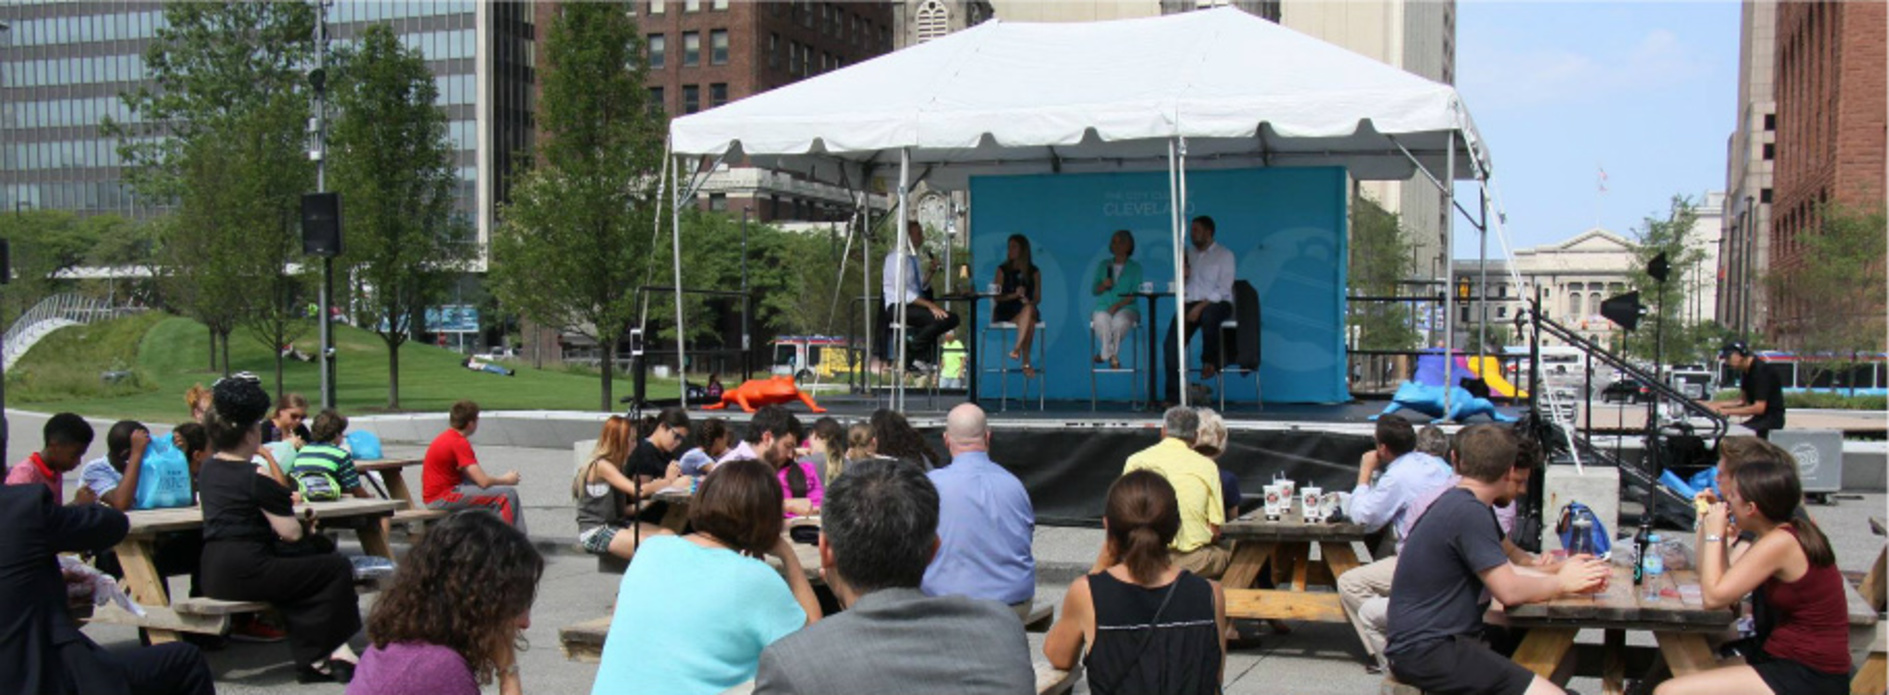 Love Cleveland? Then Join Us In the Square this Summer